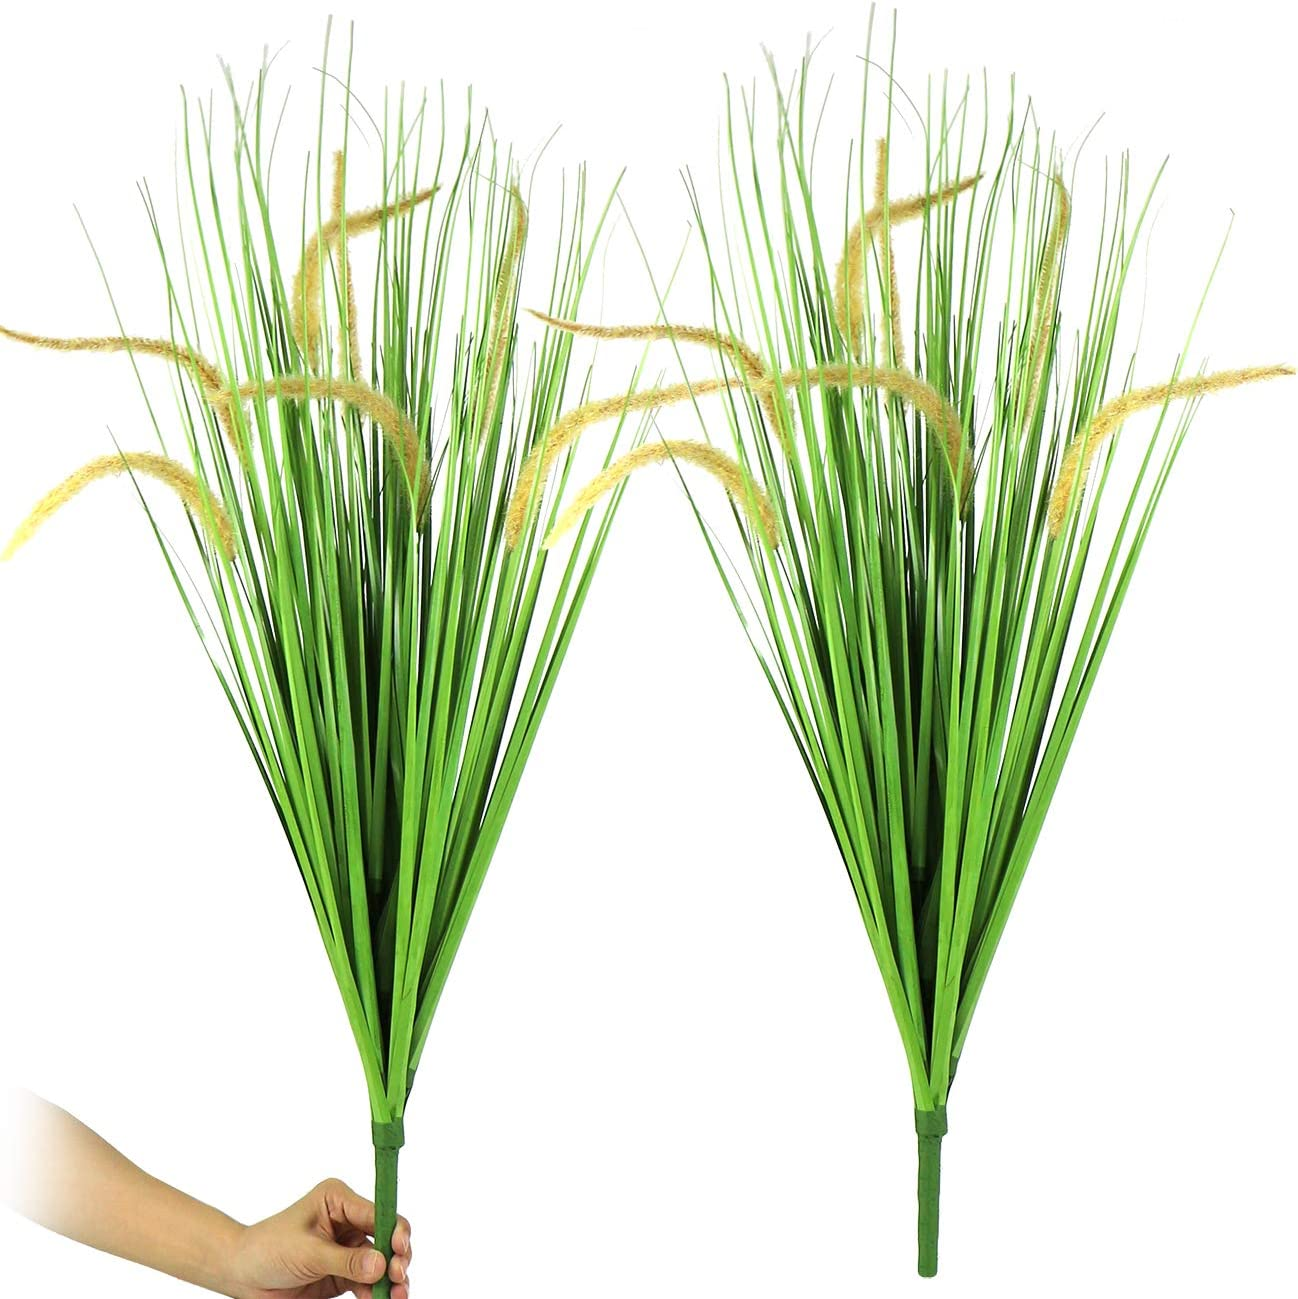 "29"" Artificial Plants Fake Flower Plastic Greenery Shrubs Wheat Grass Hanging Outdoor Planter Indoor Outside Home Garden Office Verandah Wedding Décor 2 Bunches"